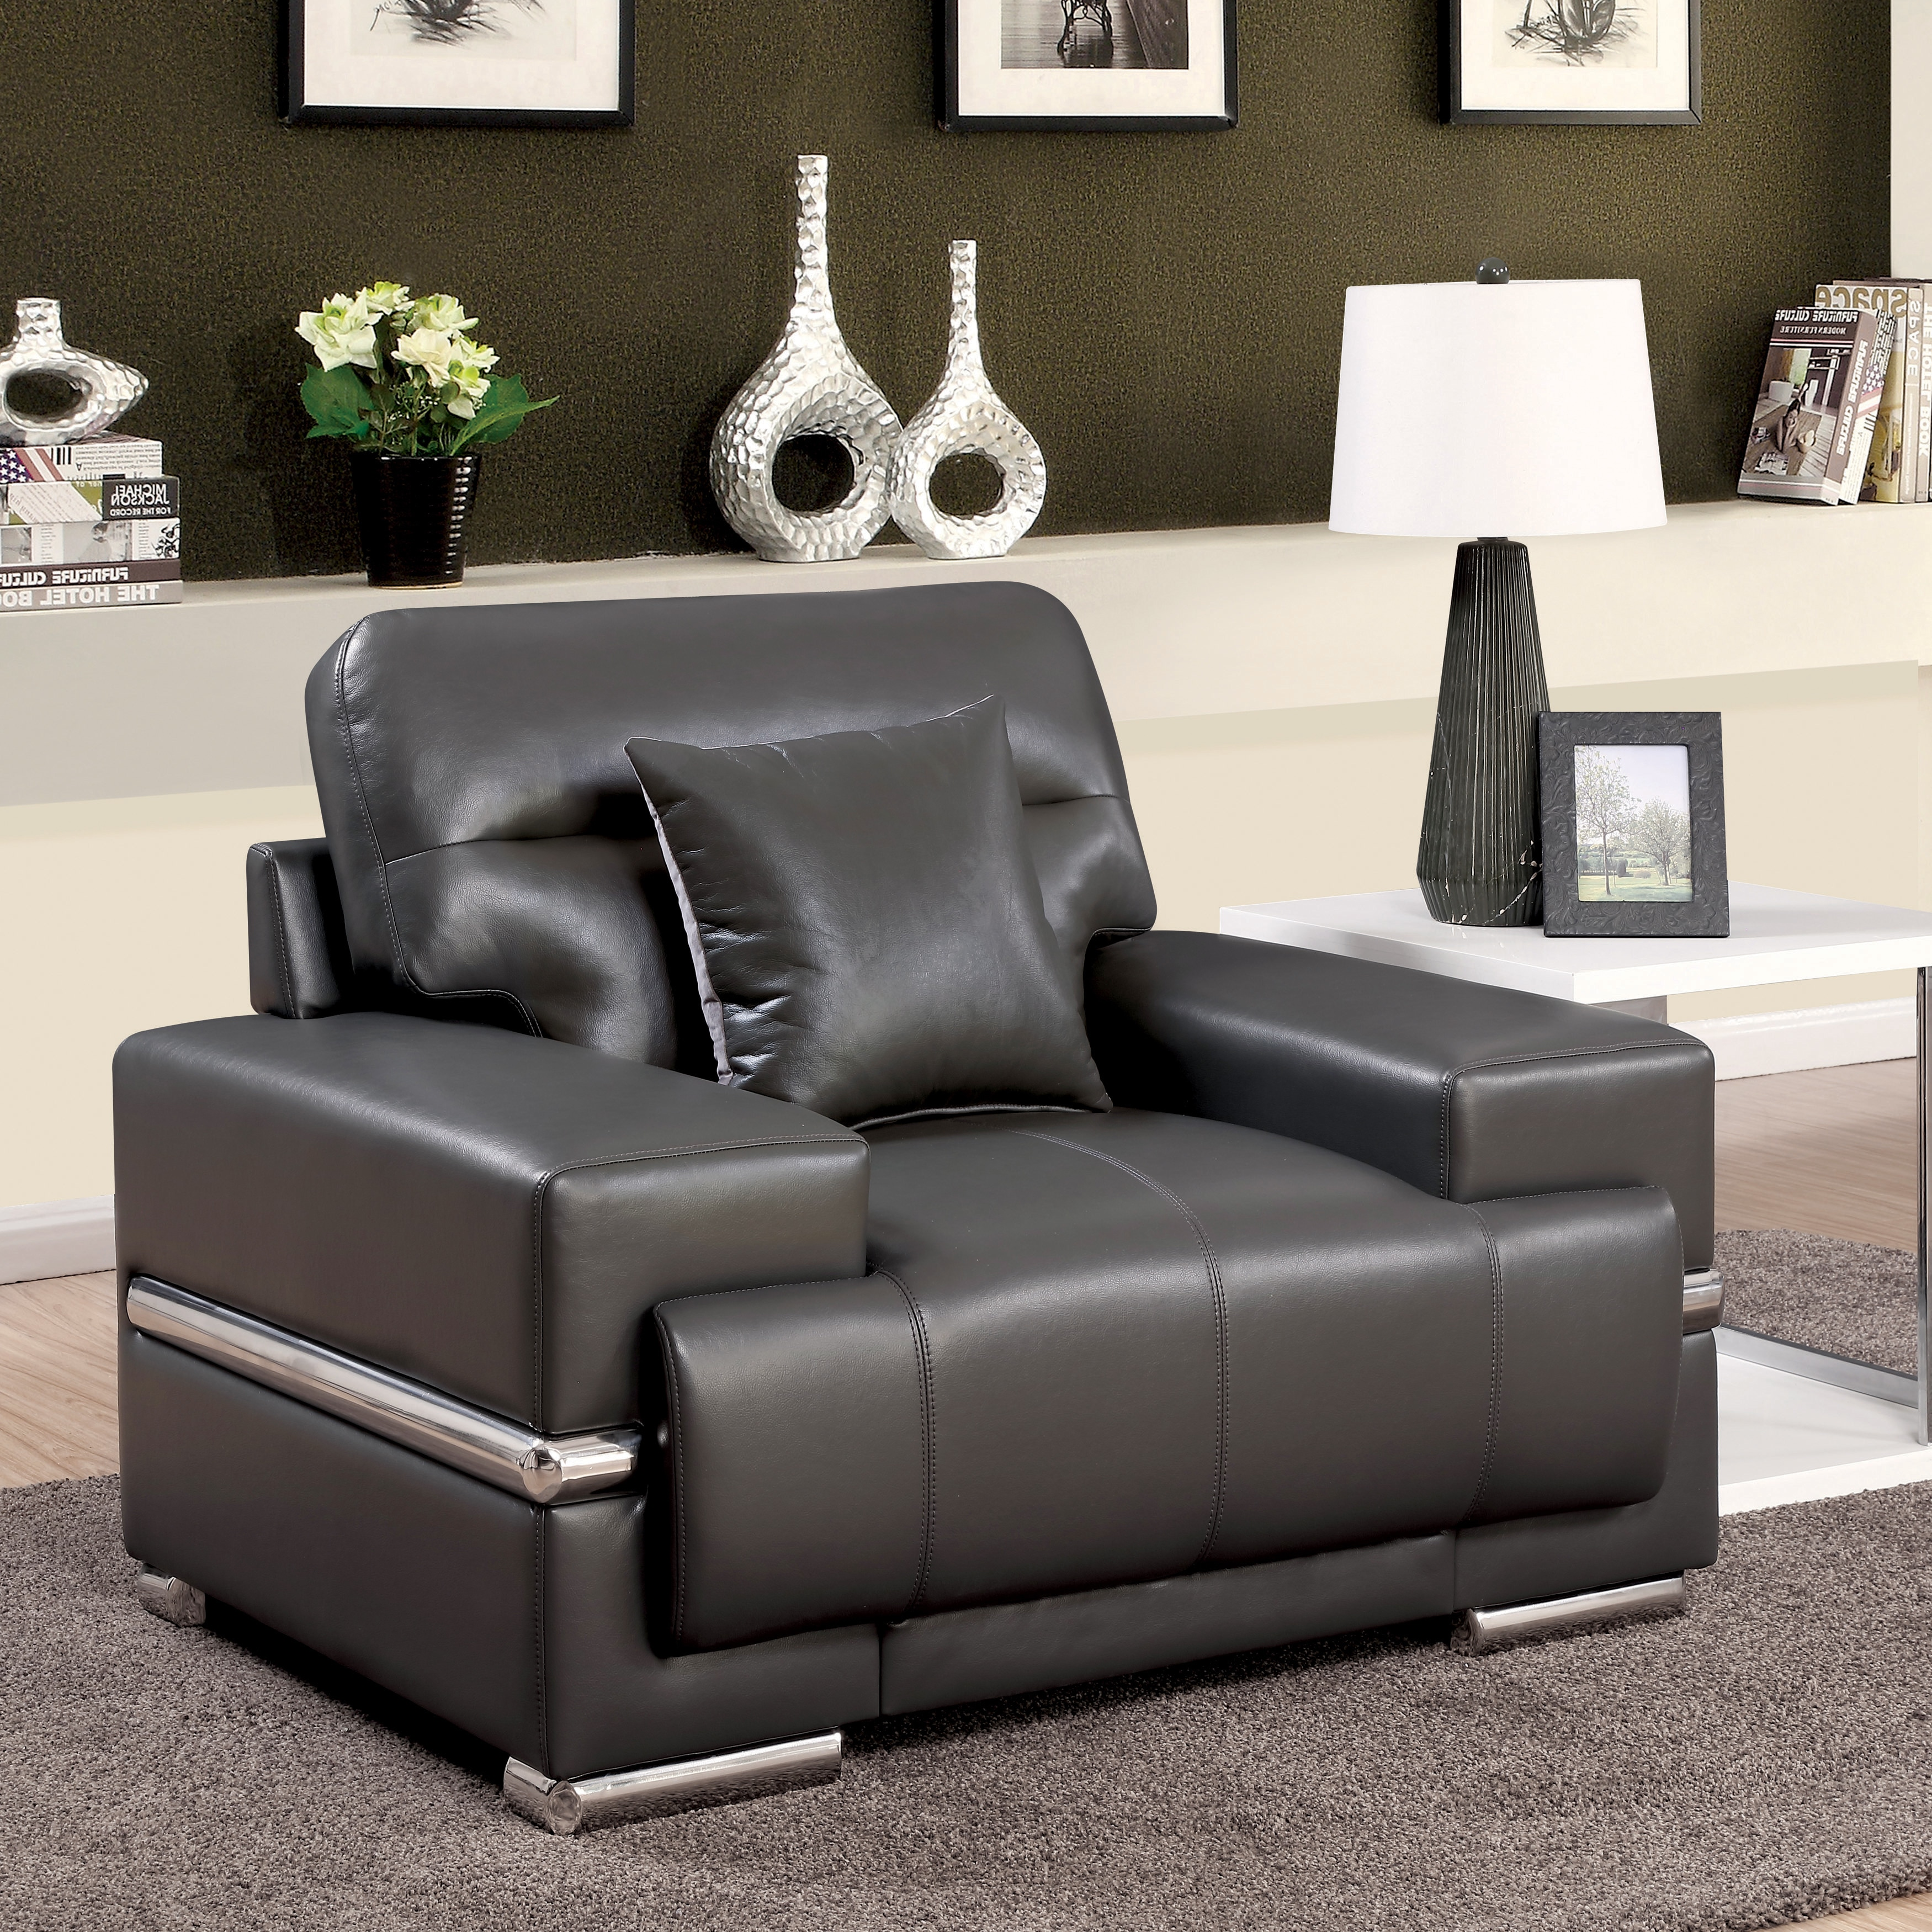 Furniture of America  Vernan Modern Tufted Breathable Leather Arm Chair Black